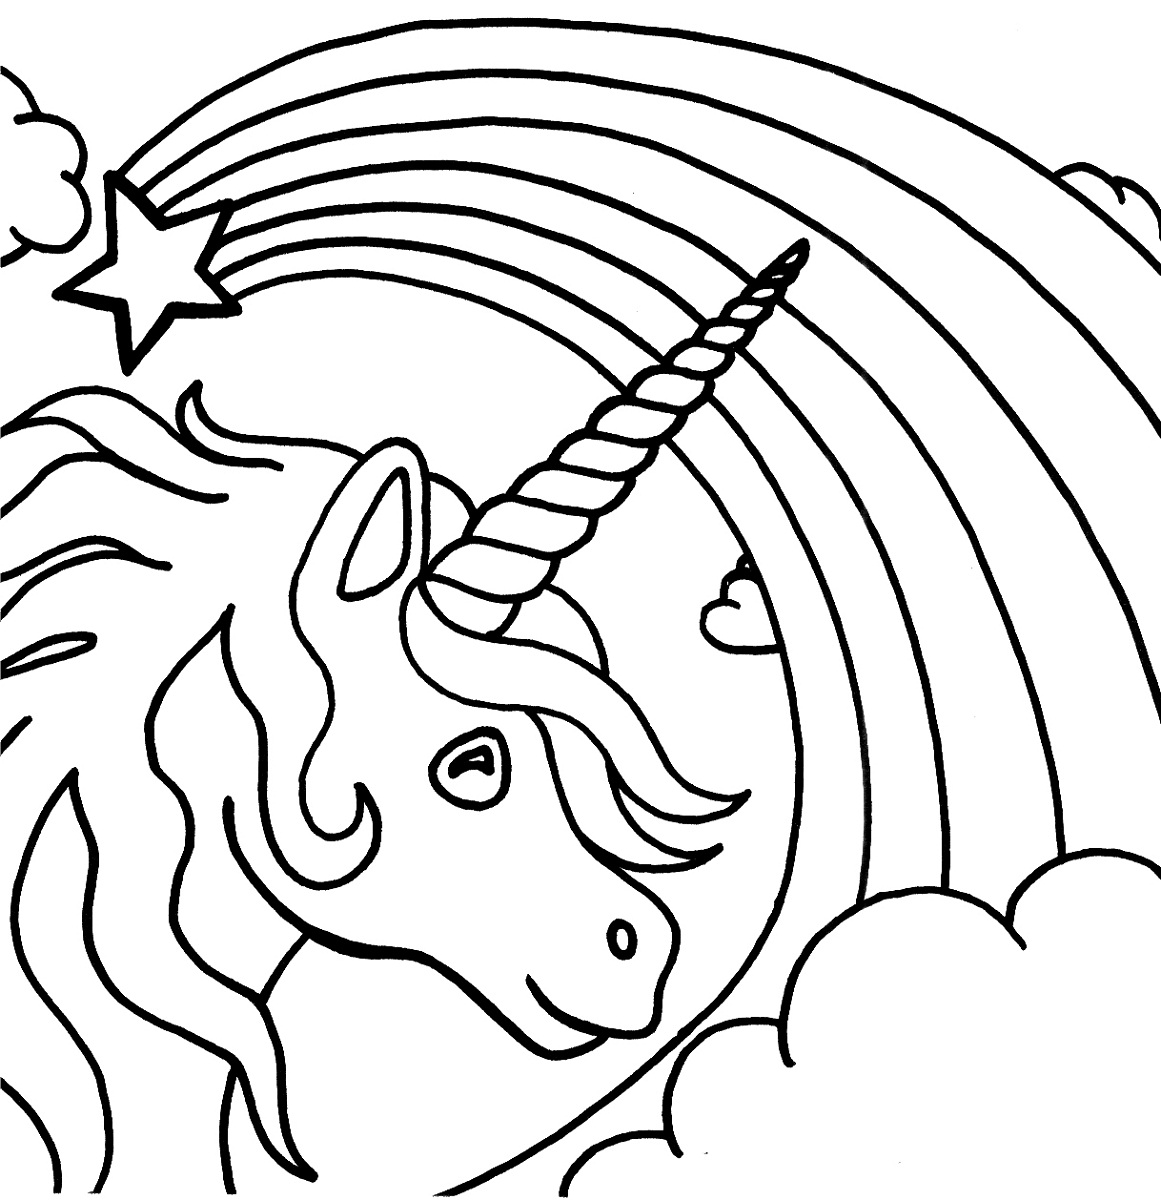 free-activity-pages-for-kids-unicorn